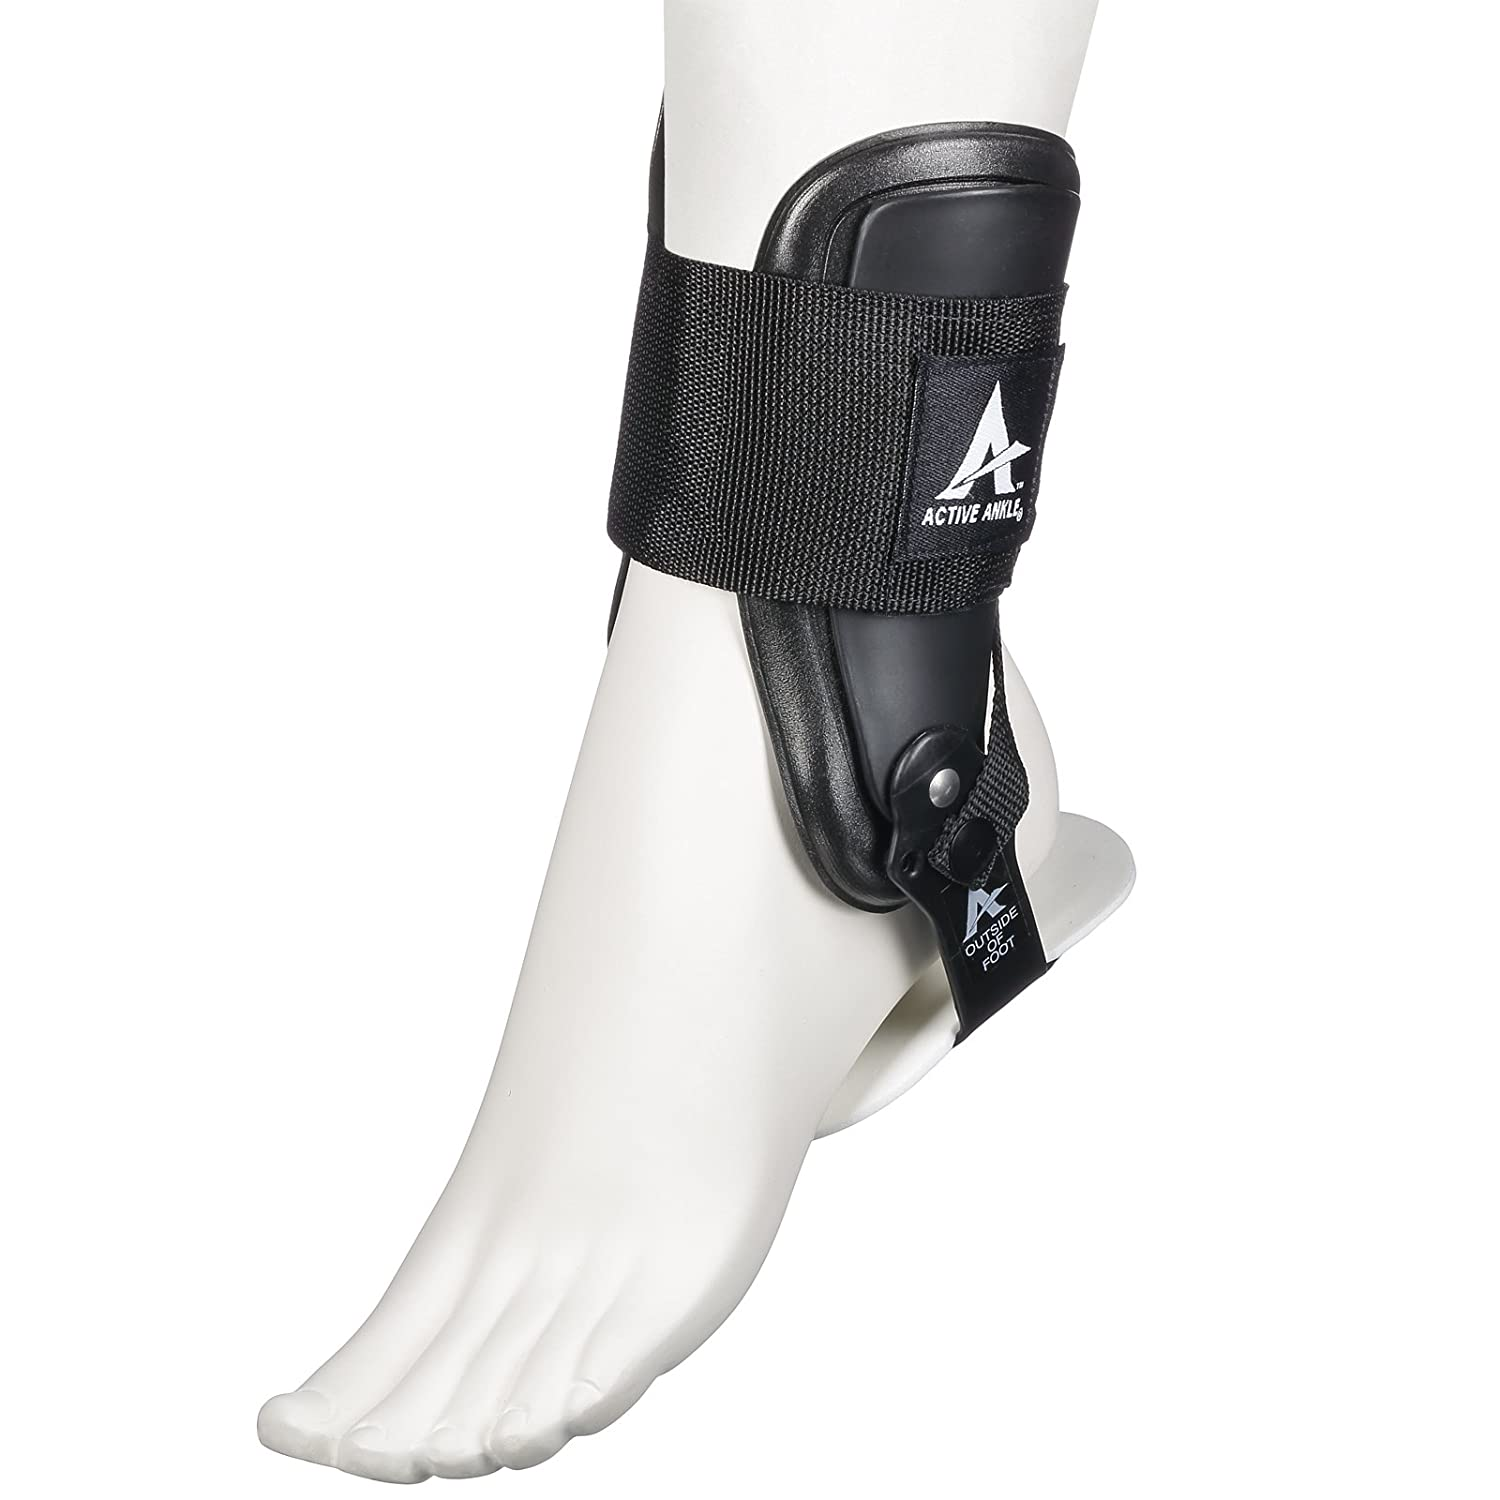 Active Ankle T2 Ankle Brace, Rigid Ankle...